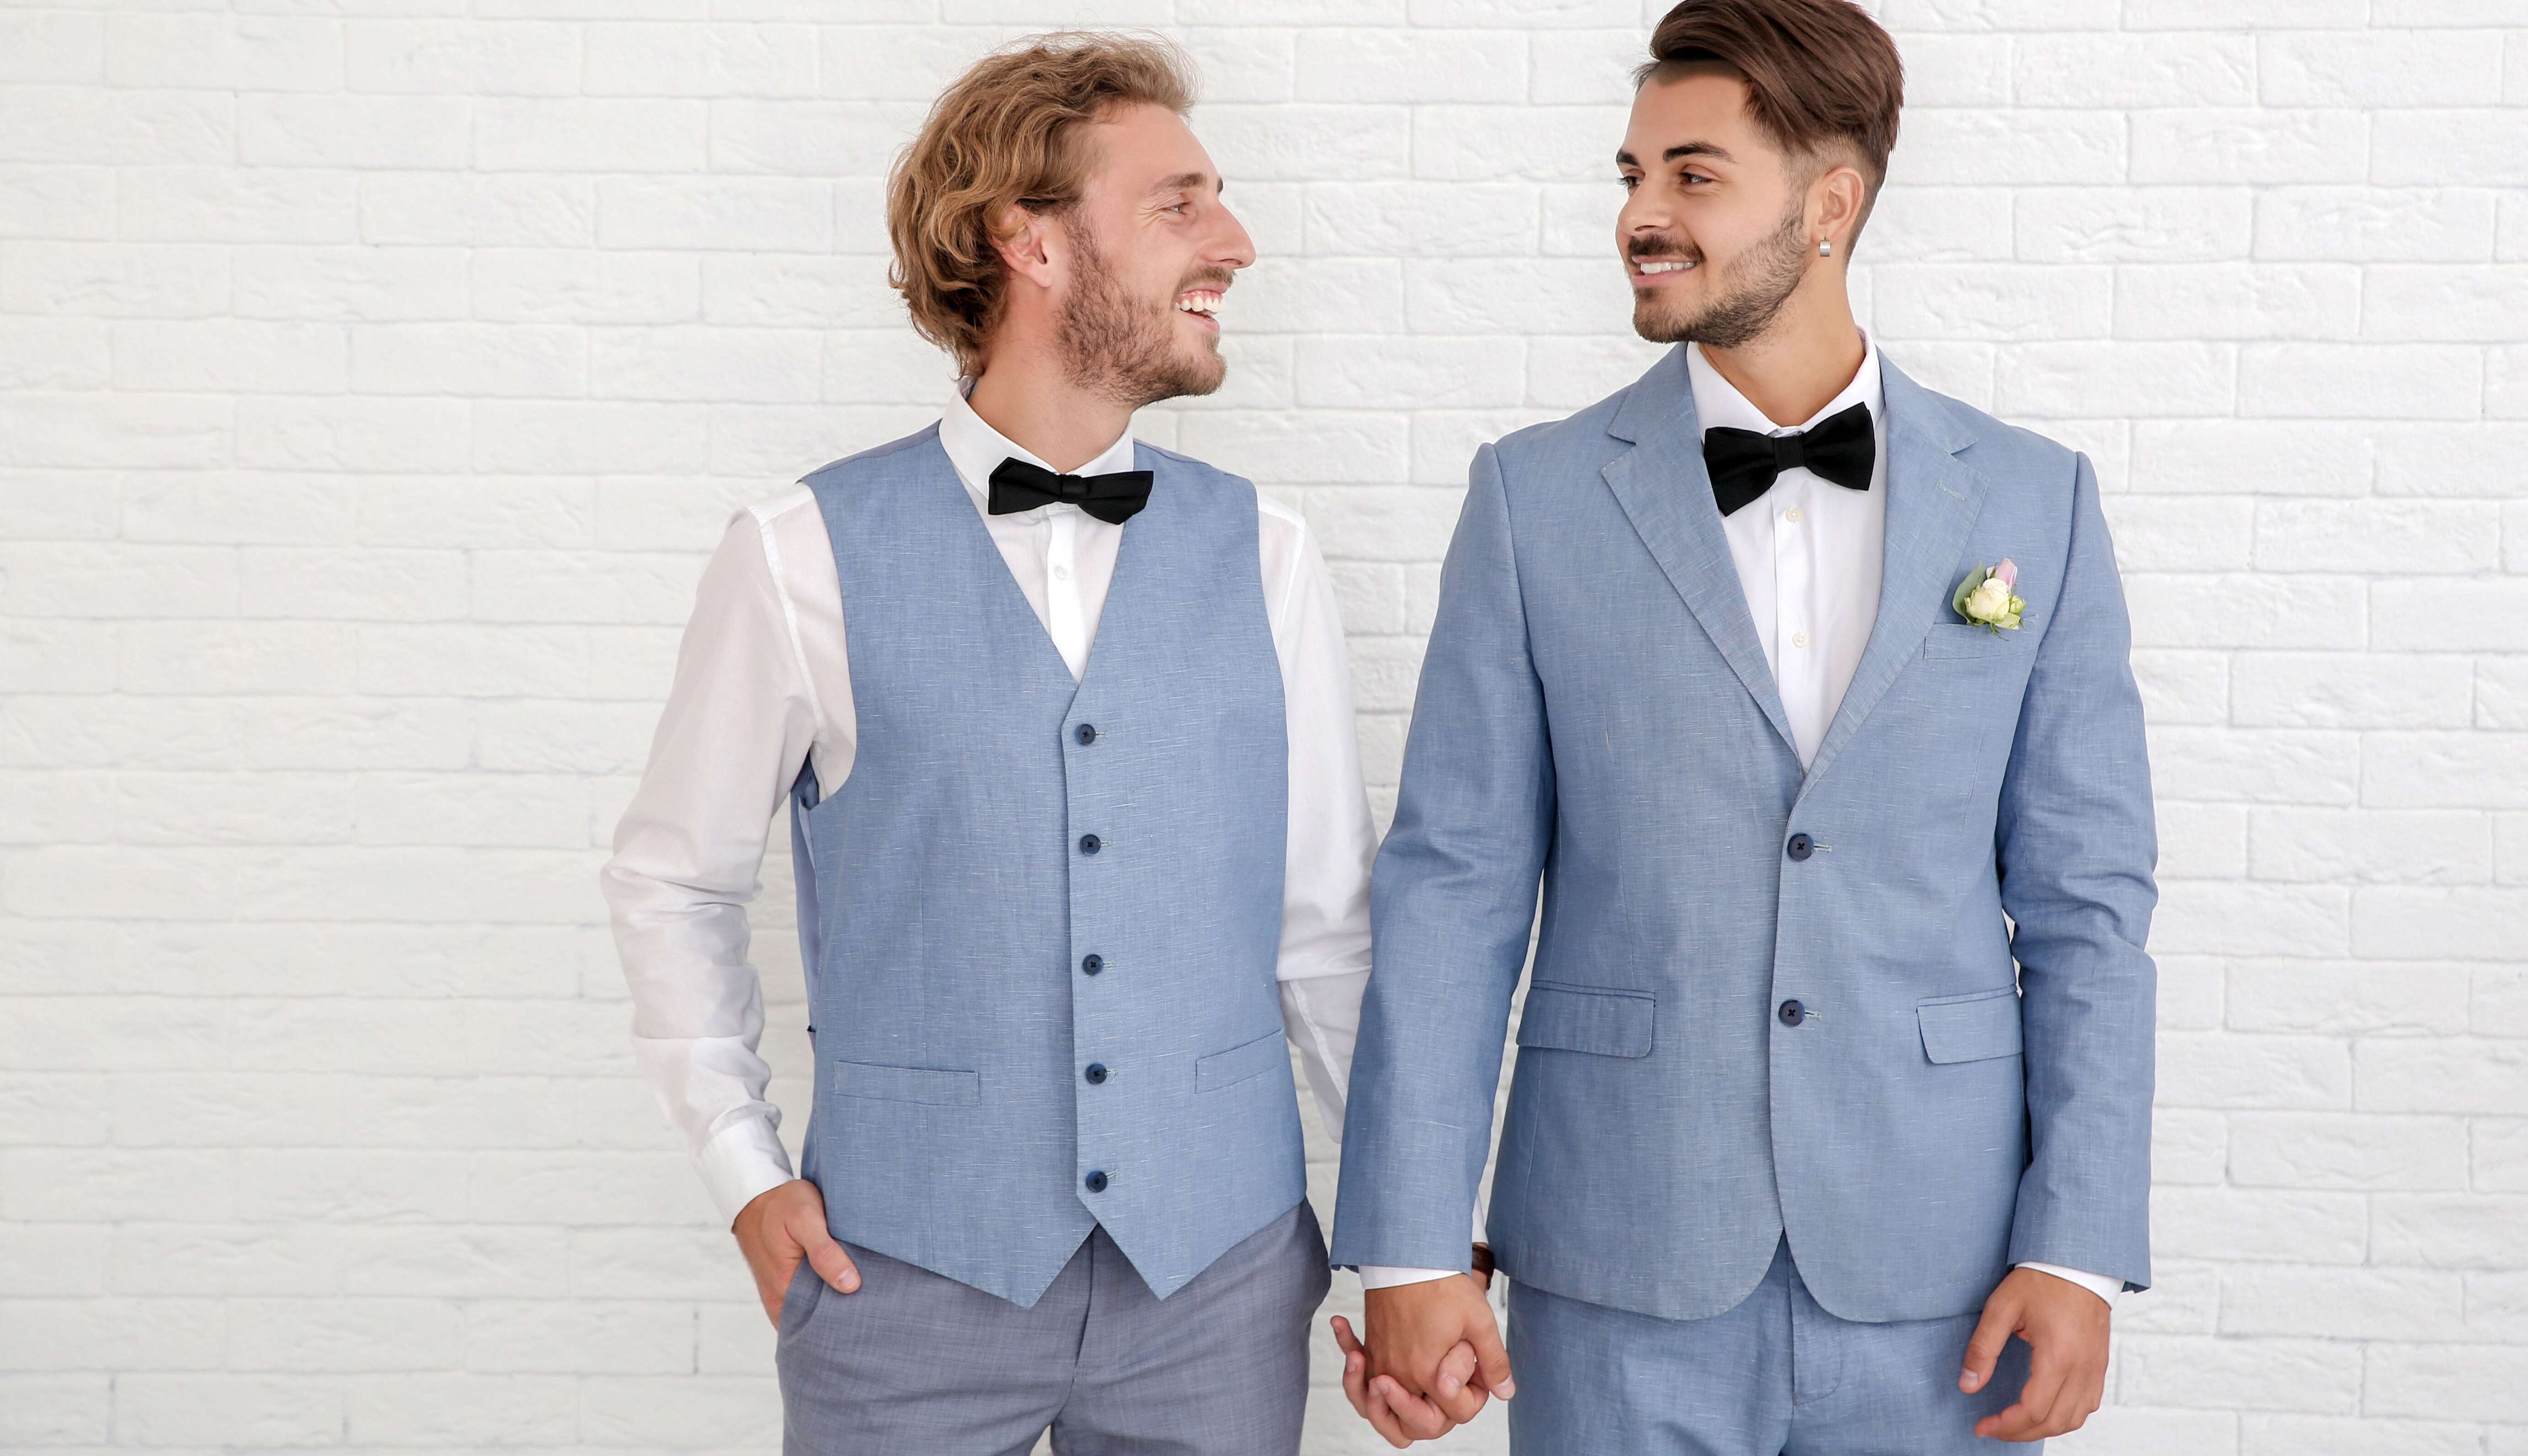 walk down the aisle together same sex wedding